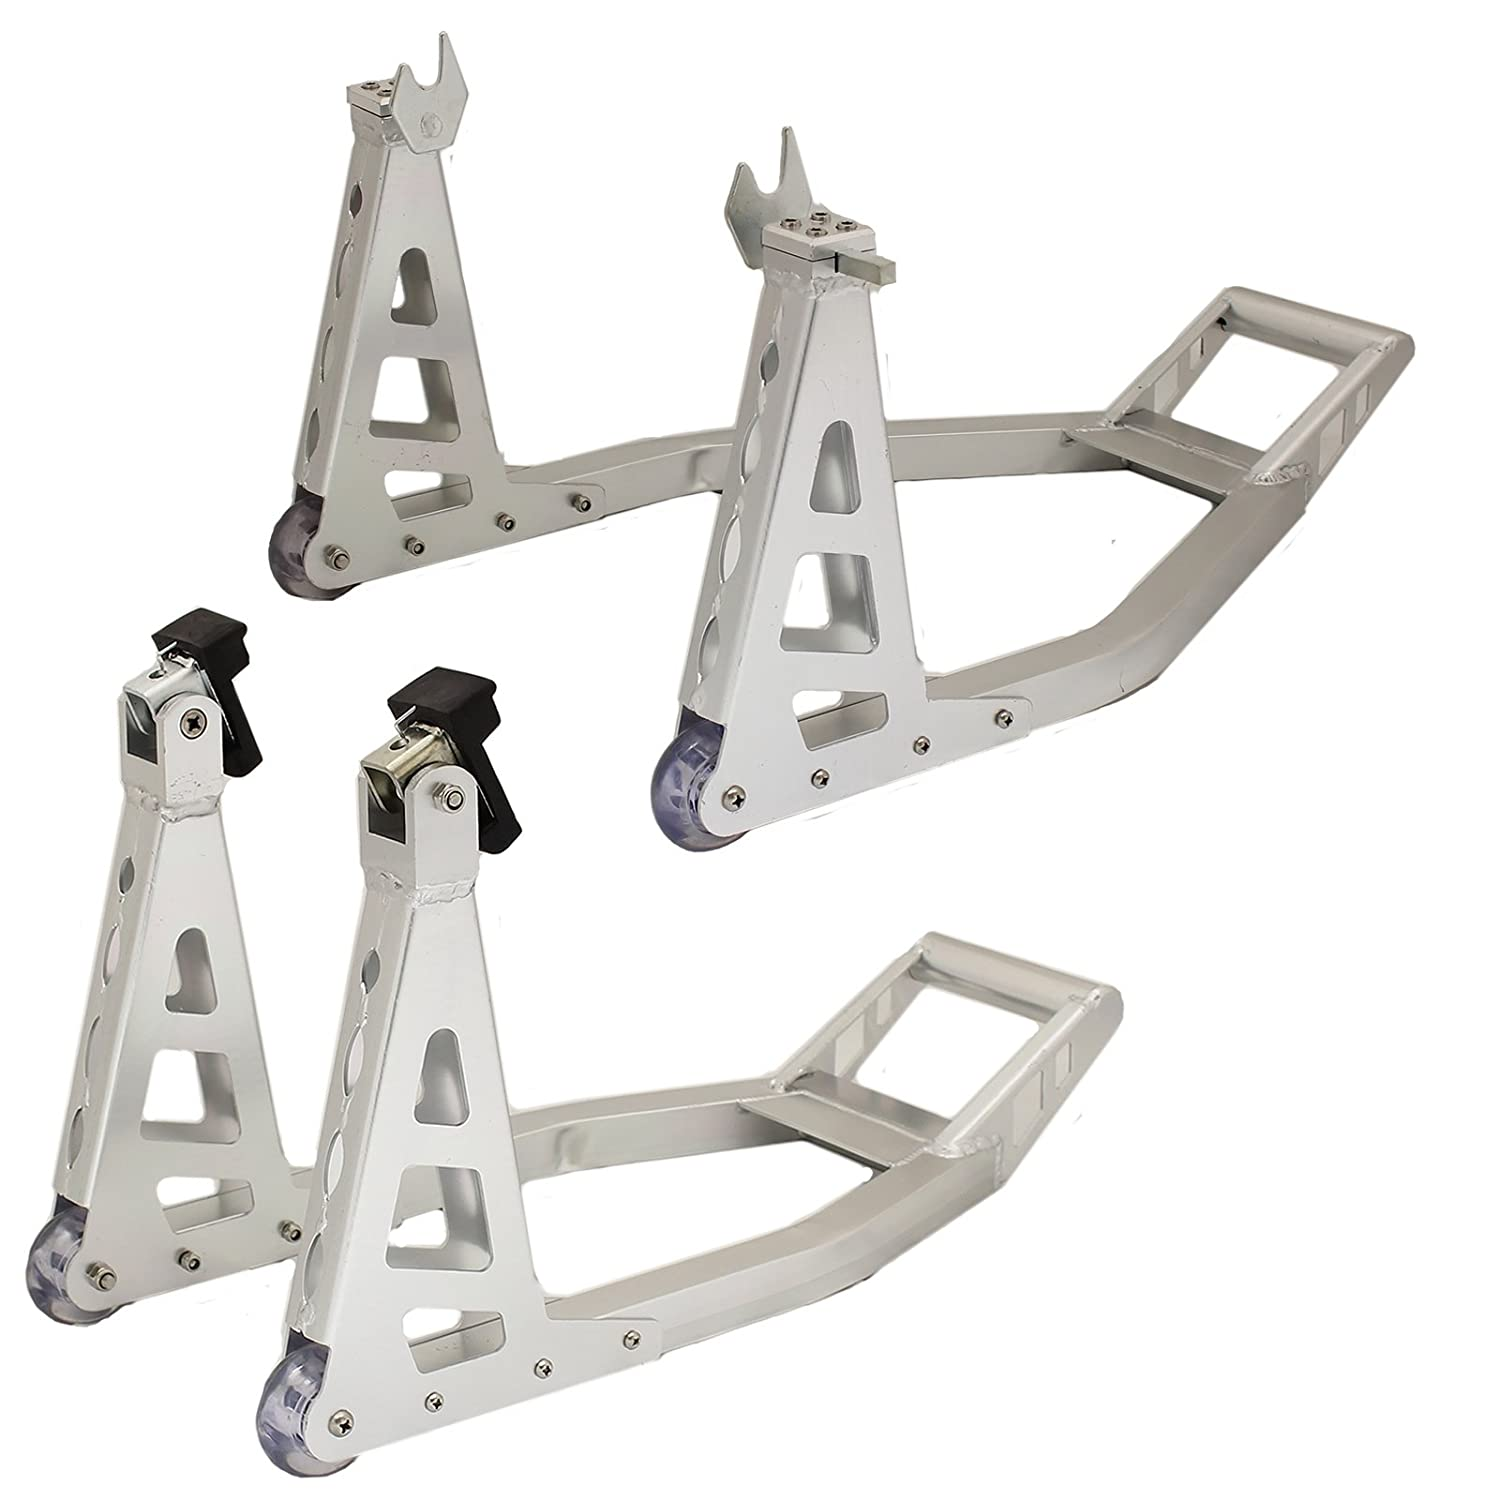 Ryde Aluminium Motorcycle Front & Rear Paddock Stands - Silver